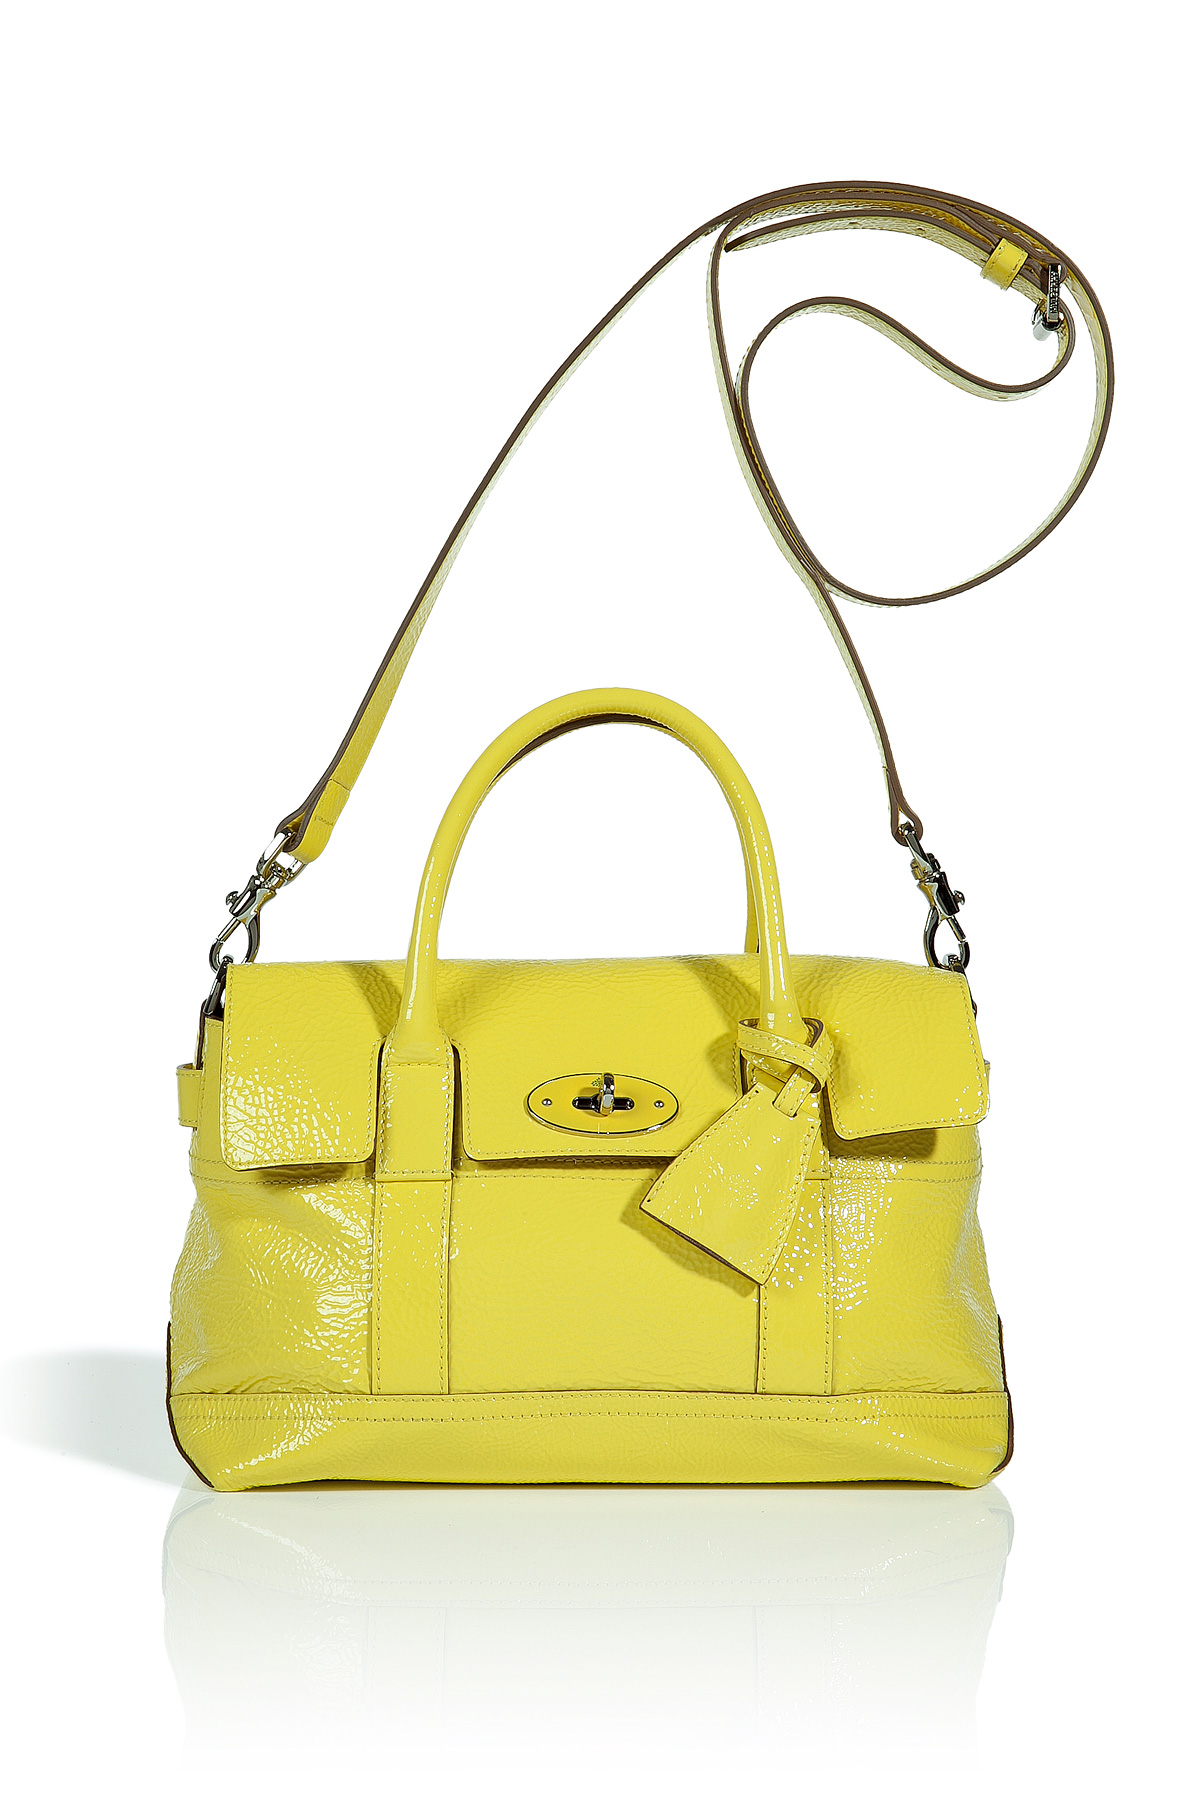 a336031fb6 ... discount lyst mulberry lemon sherbet small holiday bayswater satchel in  yellow 9eed7 be6ab